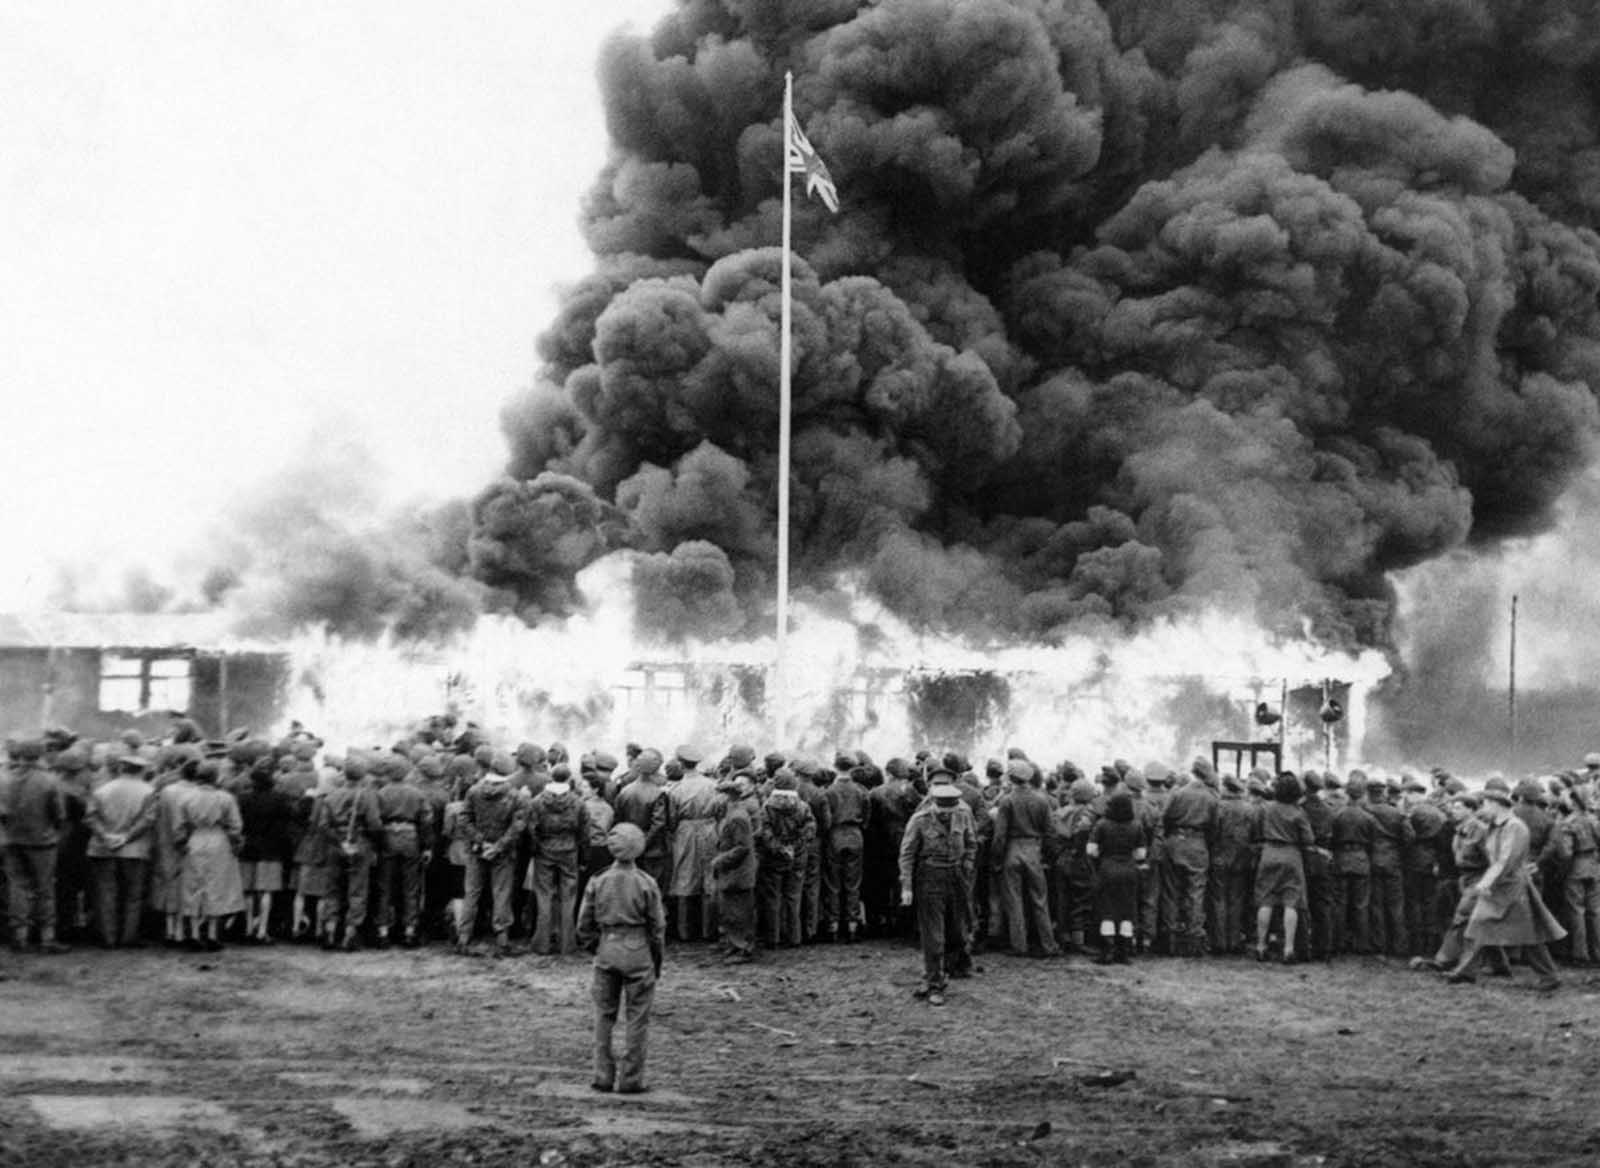 On May 21, Colonel Bird, Commandant of Belsen Camp, gave the order for the last hut at Belsen Concentration Camp to be burned. A rifle salute was fired in honor of the dead, the British flag was run up at the same moment as a flame-thrower set fire to the last hut. A German flag and portrait of Hitler went up in flames inside the hut in June of 1945.